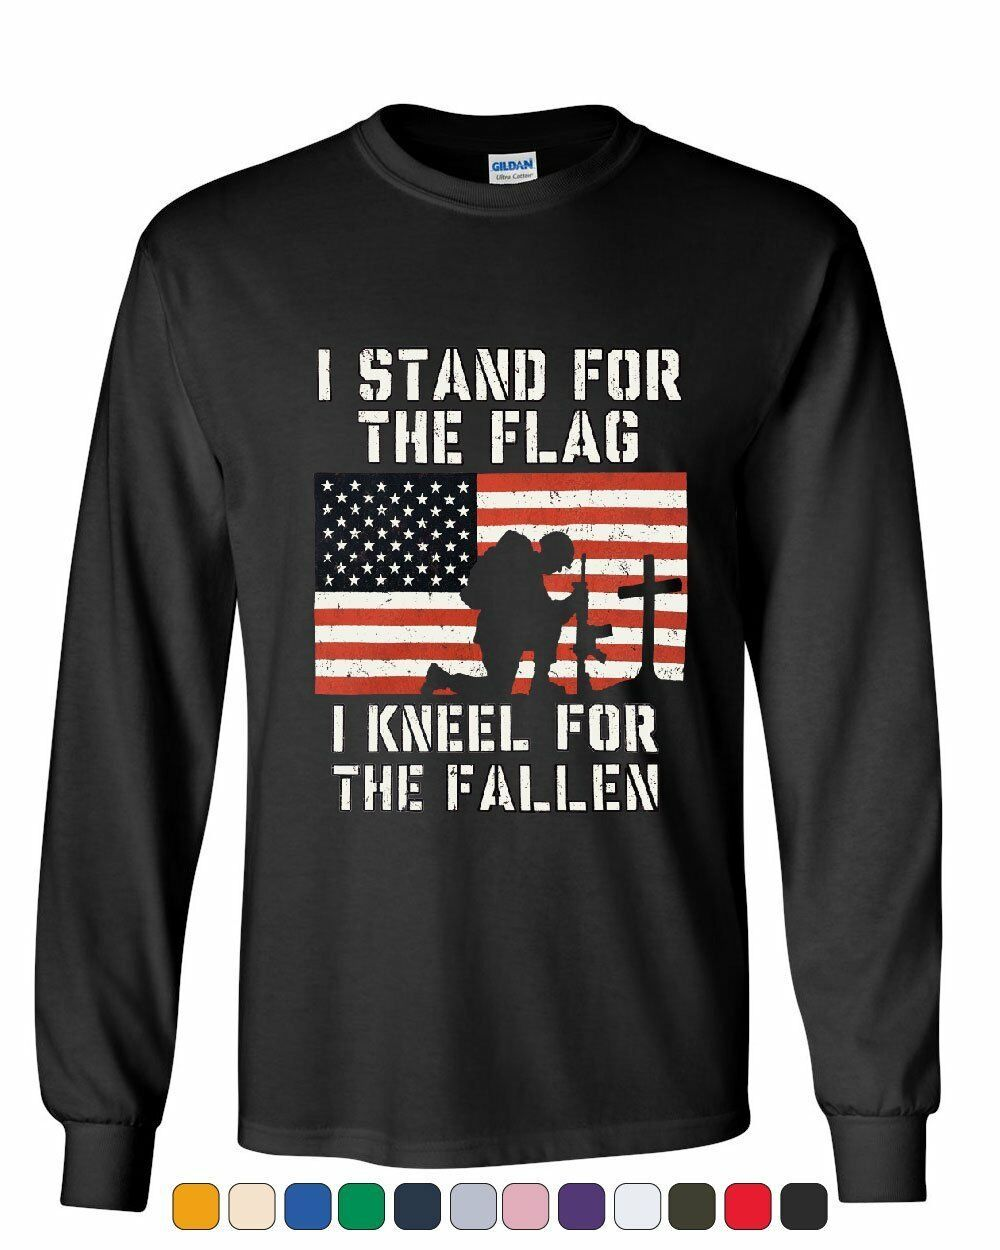 I Stand for the Flag I Kneel for the Fallen Long Sleeve Tee Patriot - $11.65 - $25.99